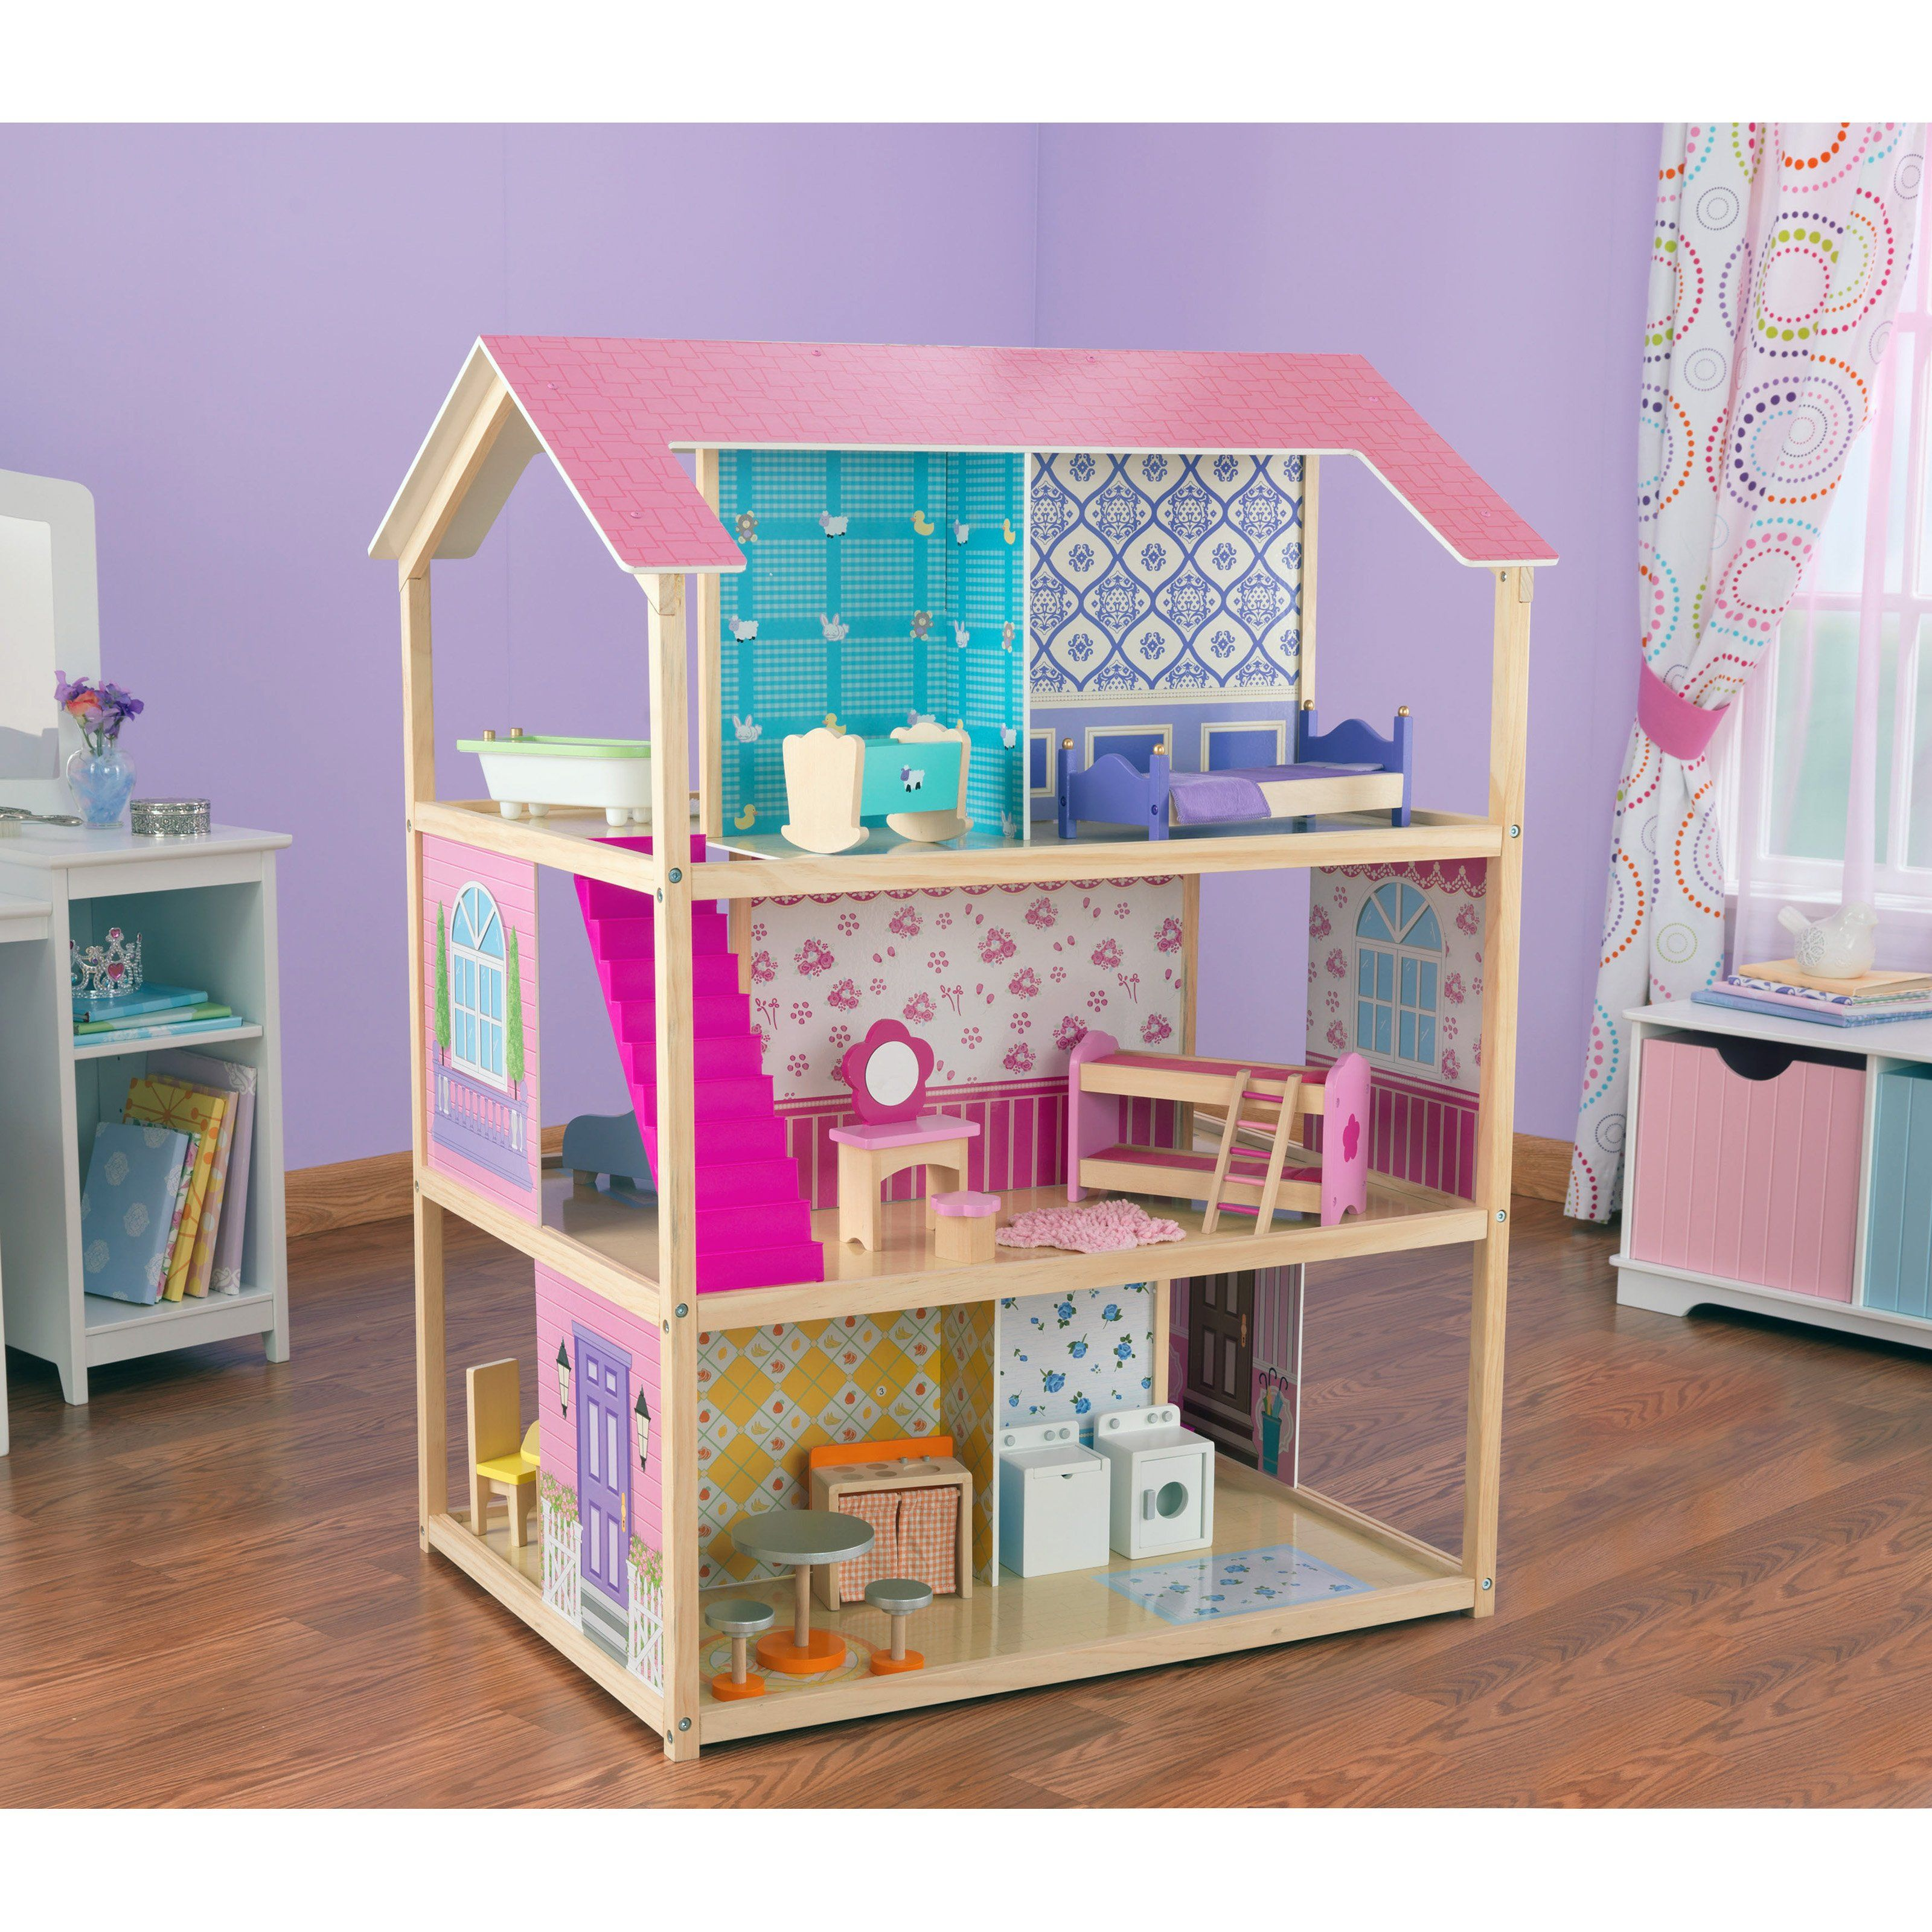 Have to have it. KidKraft Deluxe Play Around Dollhouse $159.98